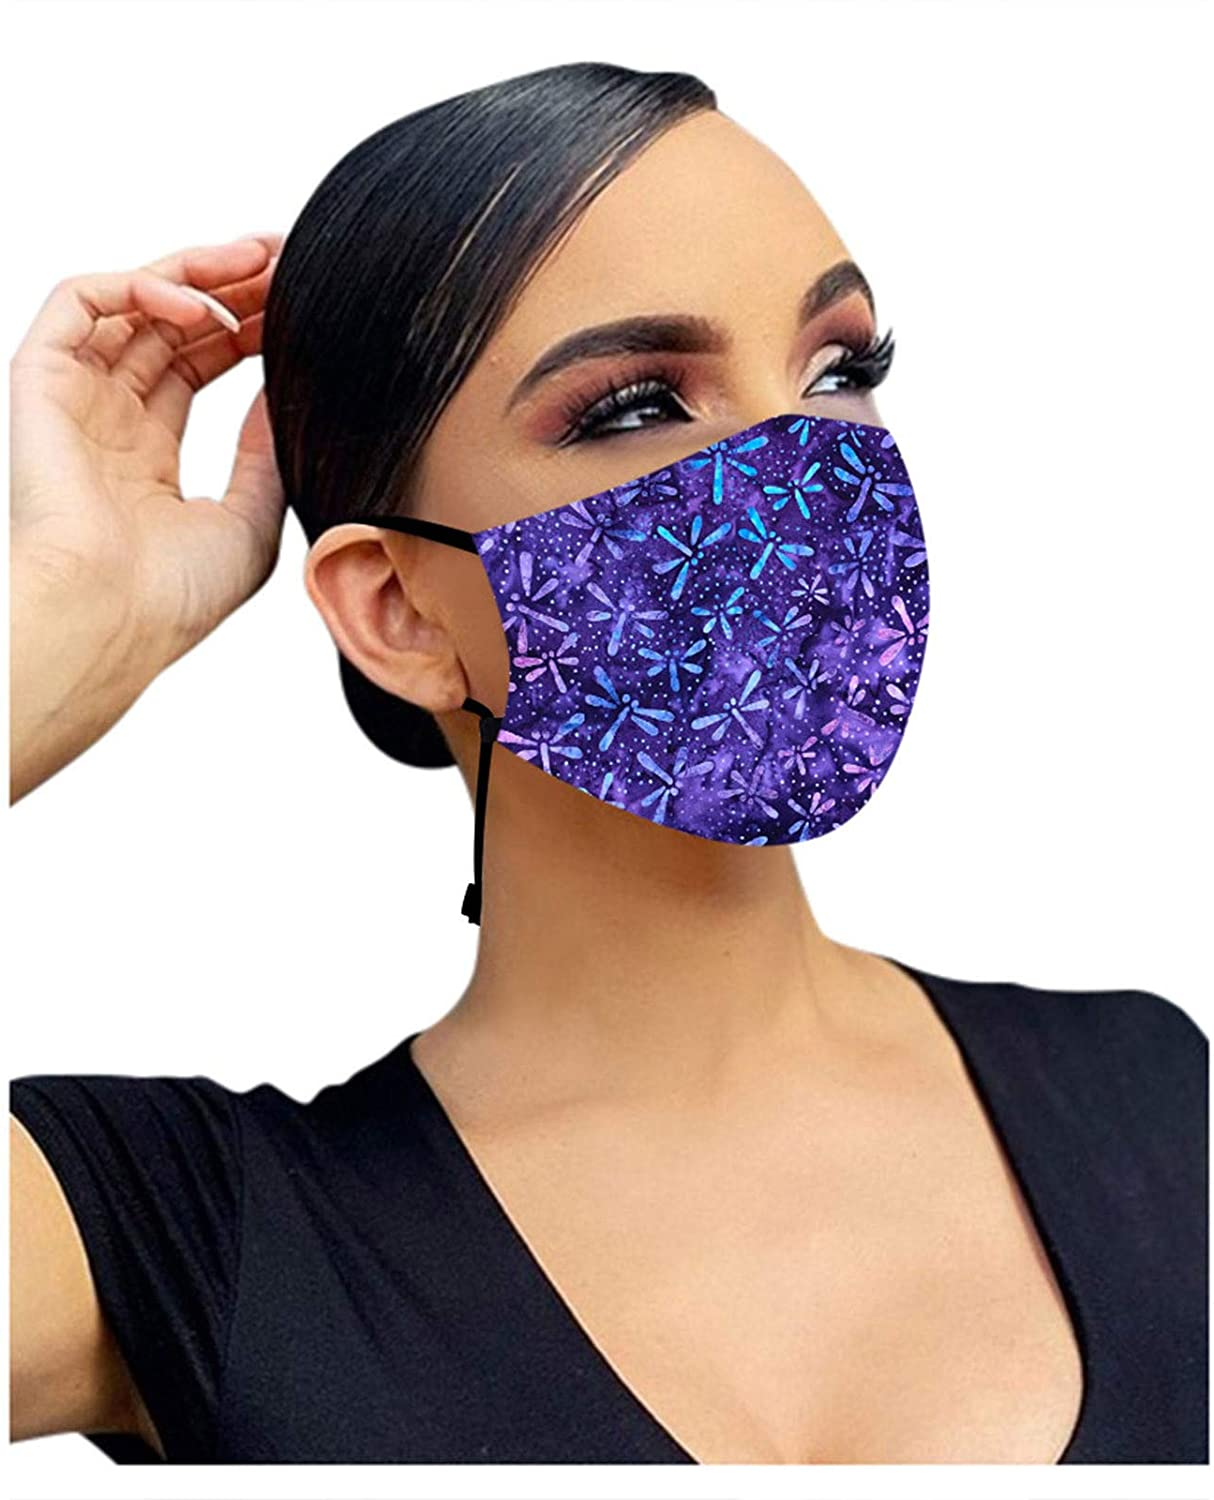 Pacoco Face Covering Close Fit and Breathable, Facial Cover Adjustable Ear Straps for Both Men and Women General Use